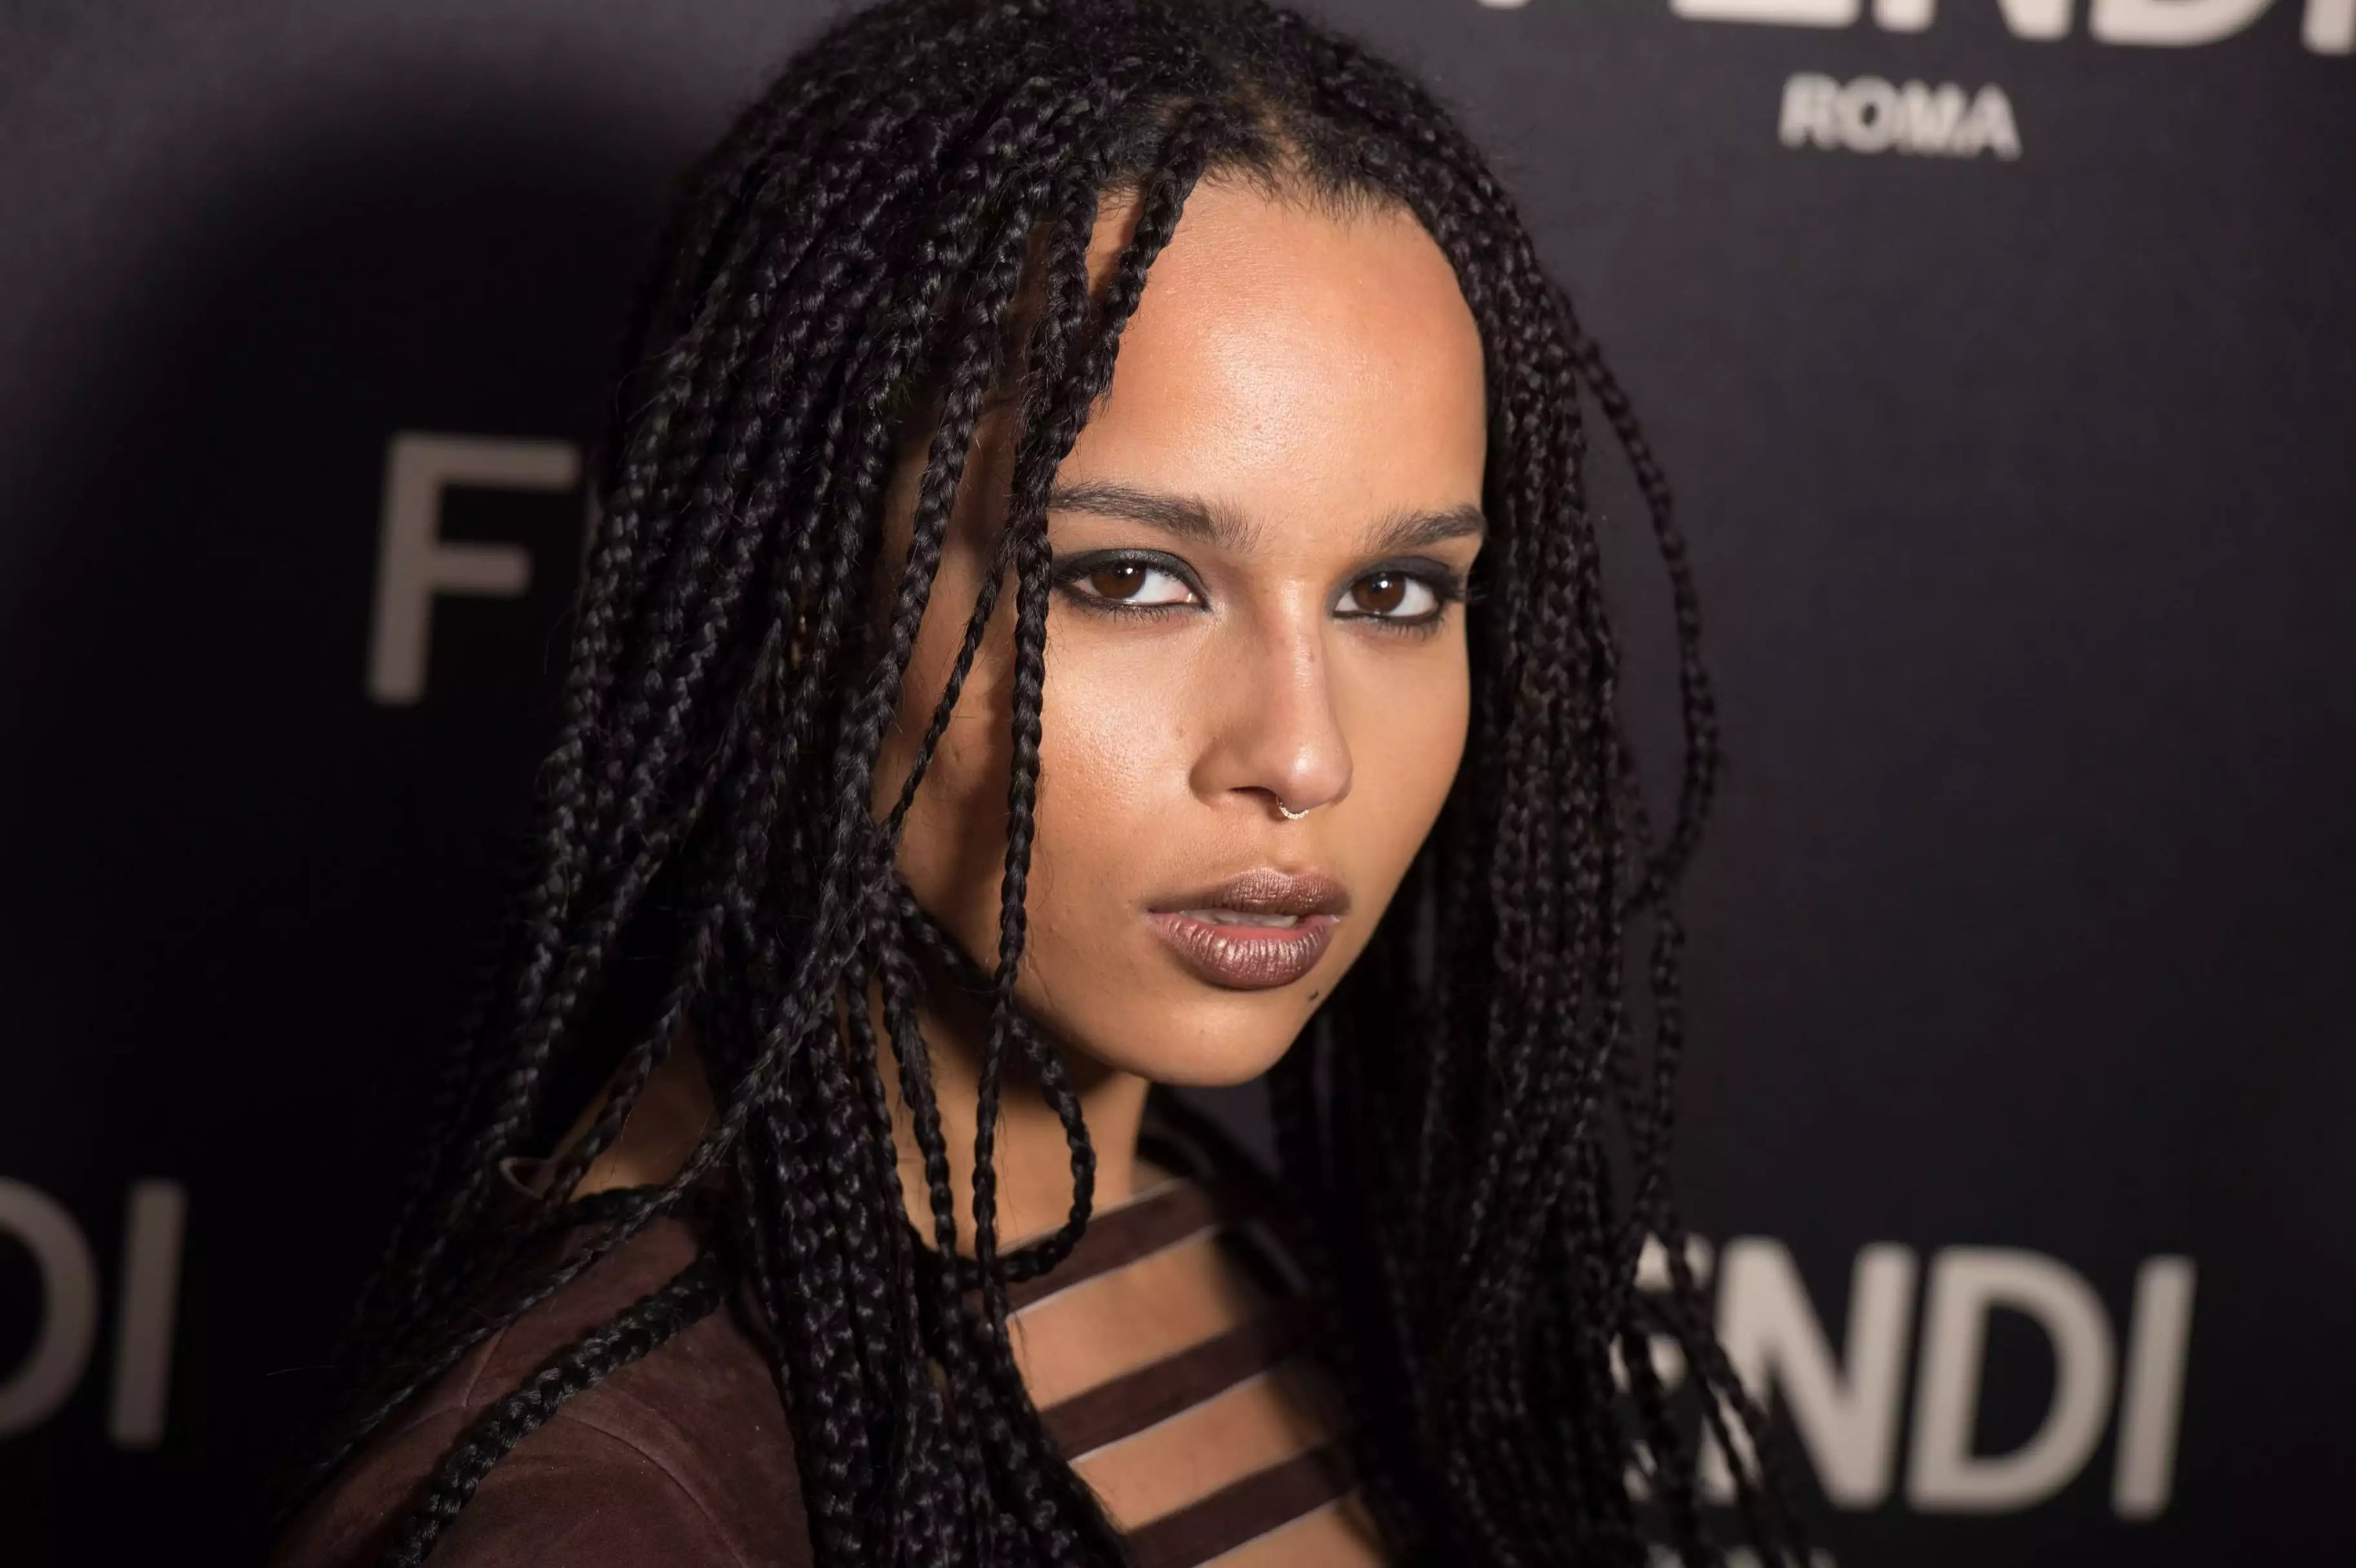 Zoe Kravitz is Catwoman In New Batman movie